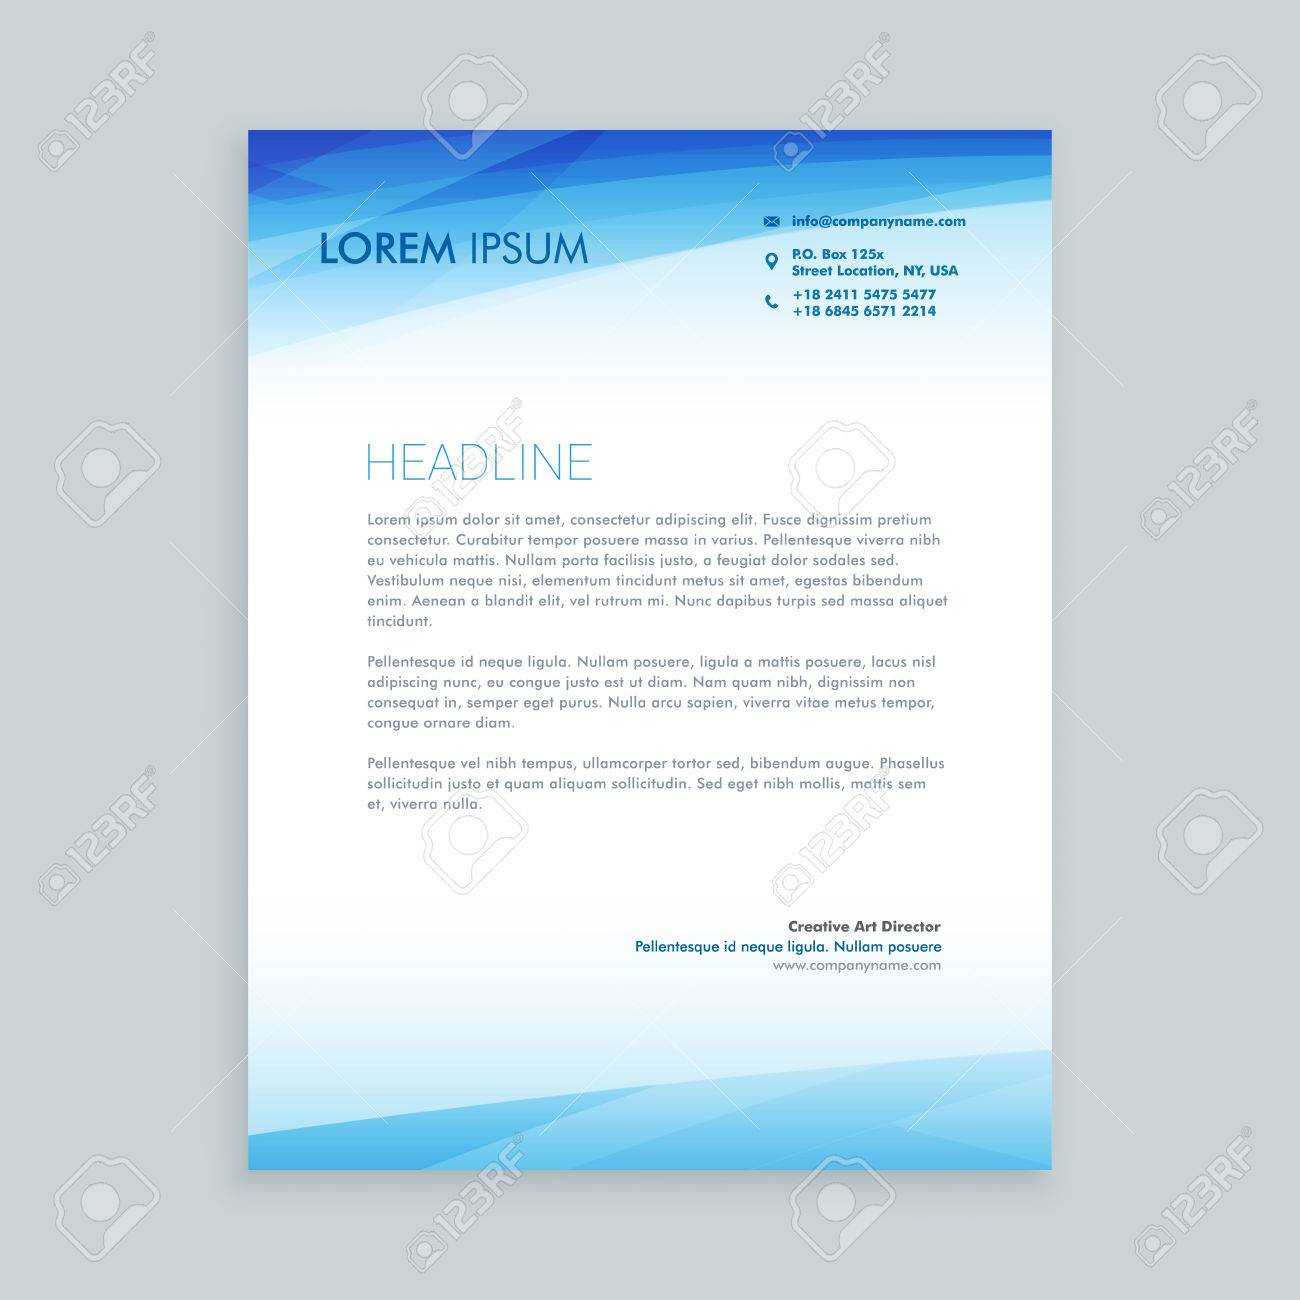 Business Letterhead Design Royalty Free Cliparts Vectors And Stock